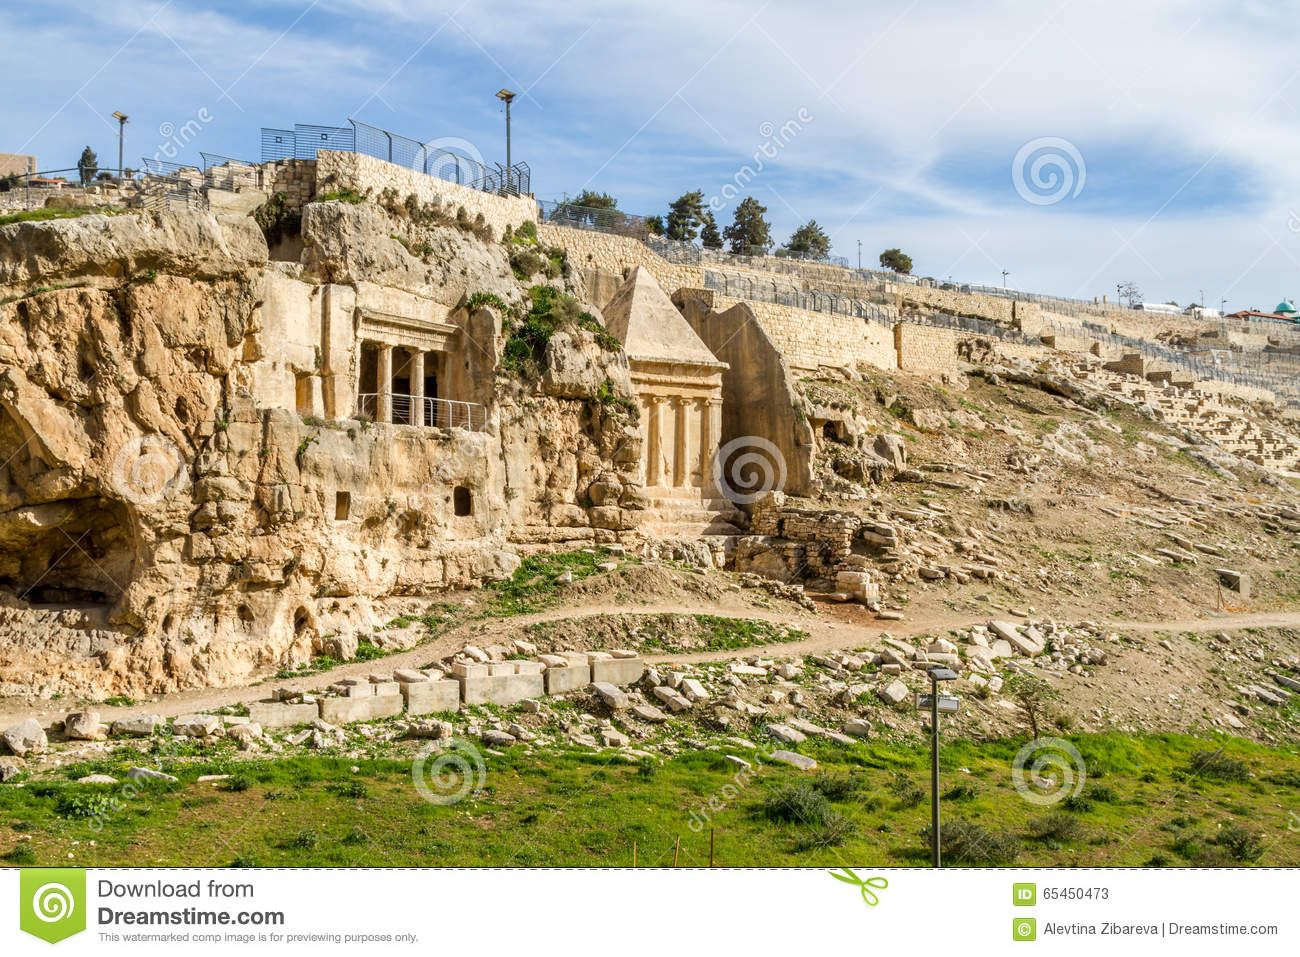 kidron valley or kings valley tomb of zechariah near the old city of